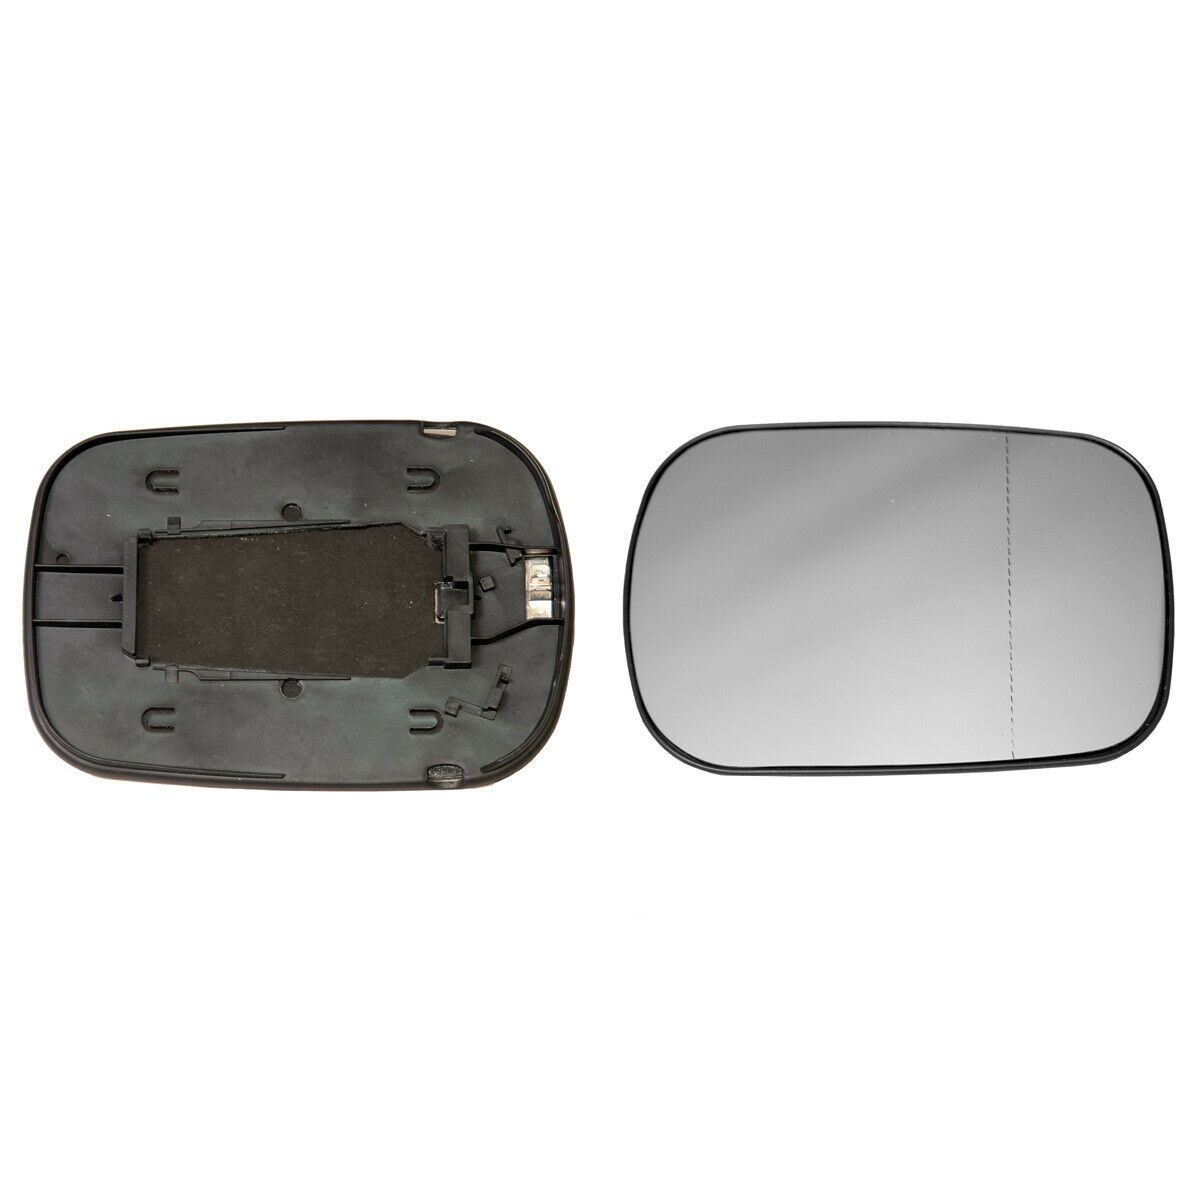 Right Hand Side,2002 to 2004 Honda Jazz Wing Mirror Glass,Silver